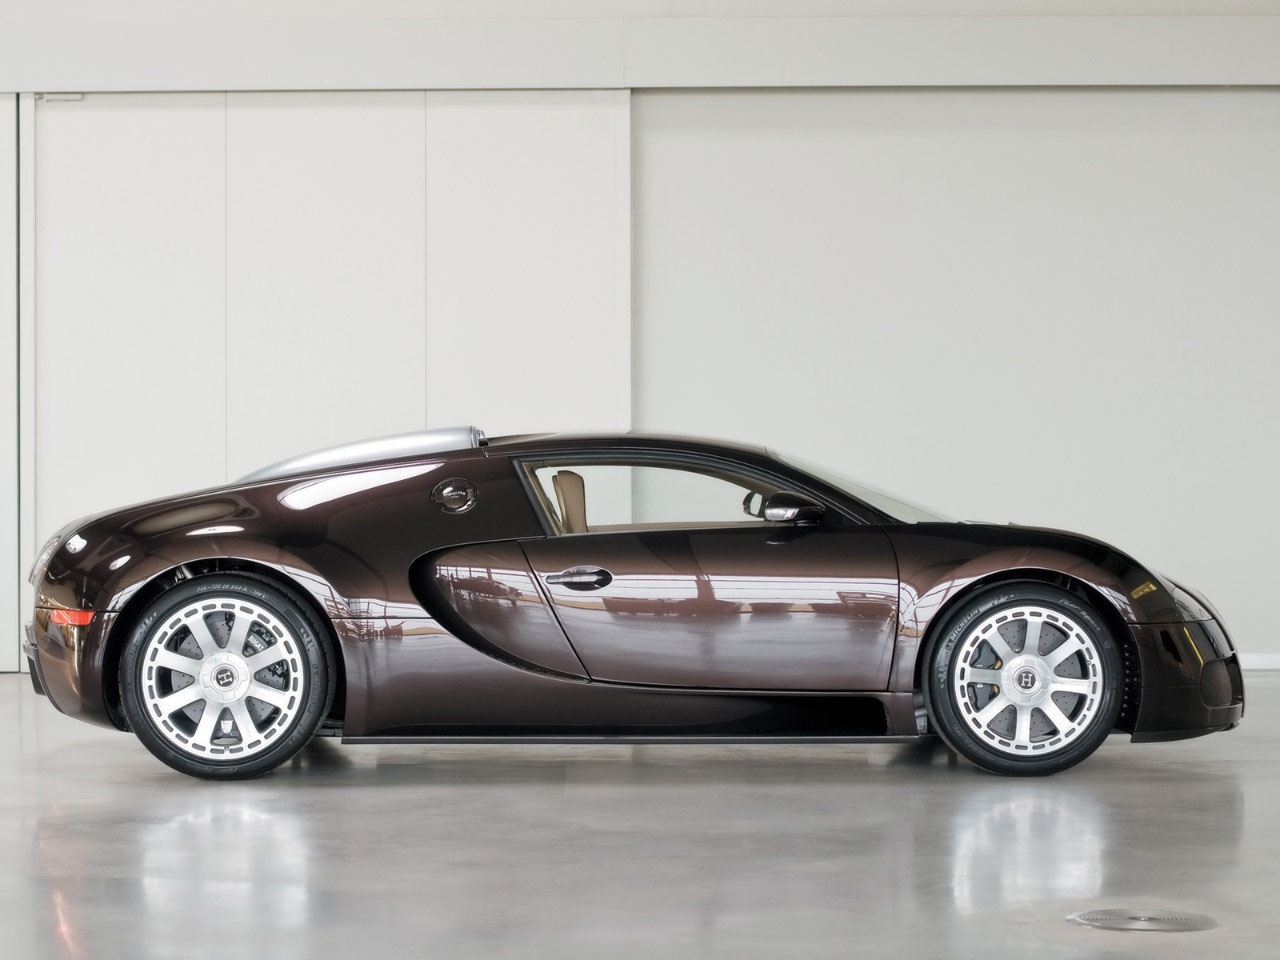 Cars Wallpapers Bugatti veyron